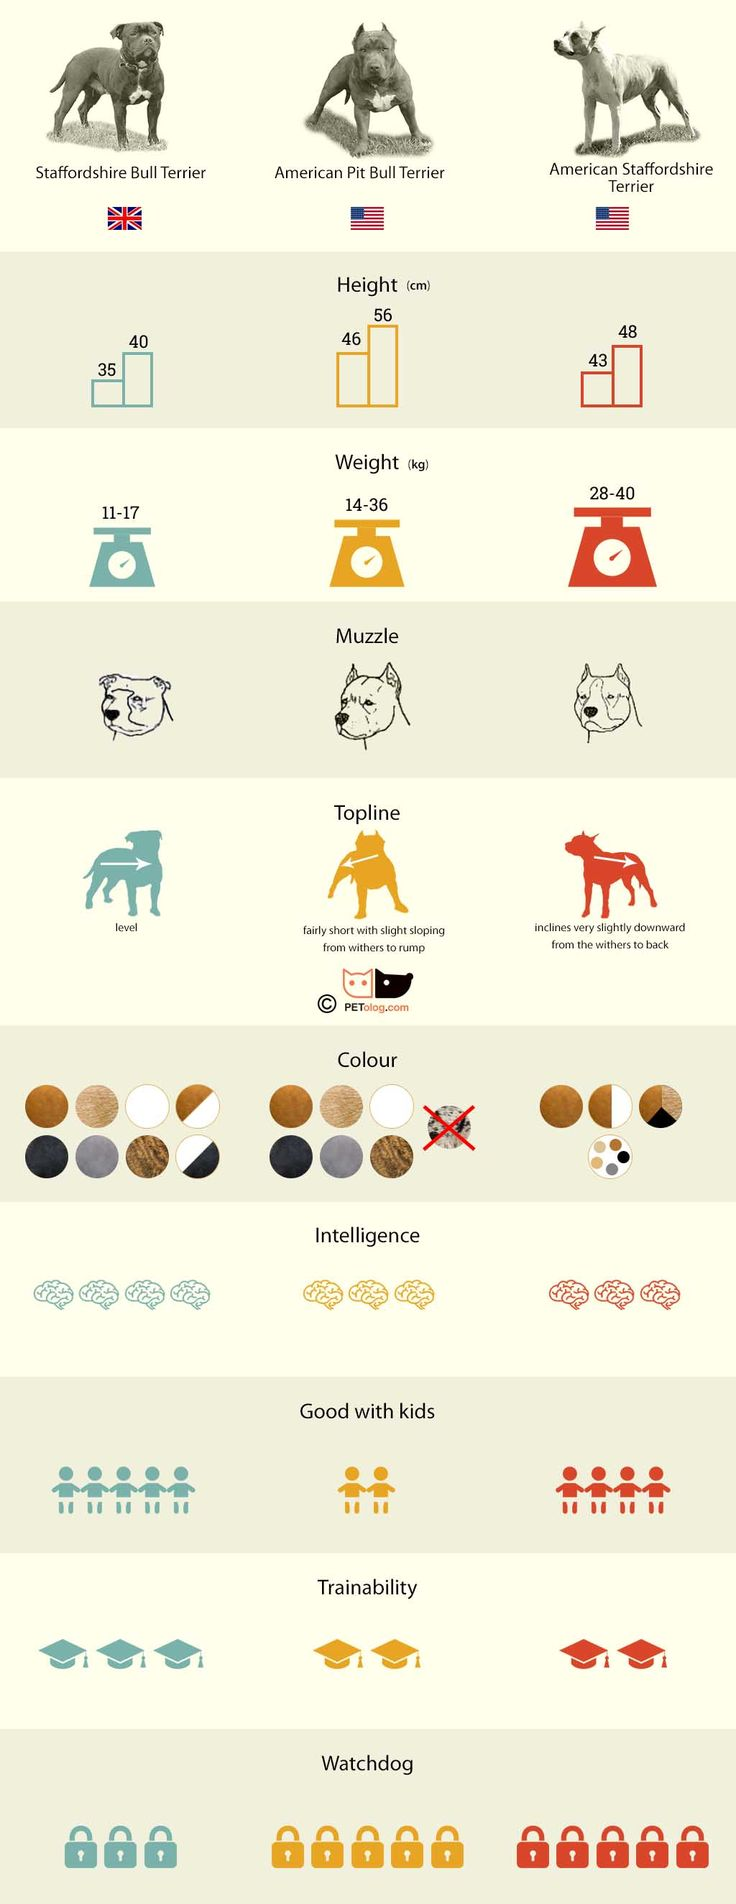 Free Infographic Submission Site: http://infographicplace.com/ Infographic: Staff or Pitbull - infographic. What's the difference between: Staffordshire Bull Terrier, American Staffordshire Terrier, American Pitbull Terrier in infographic